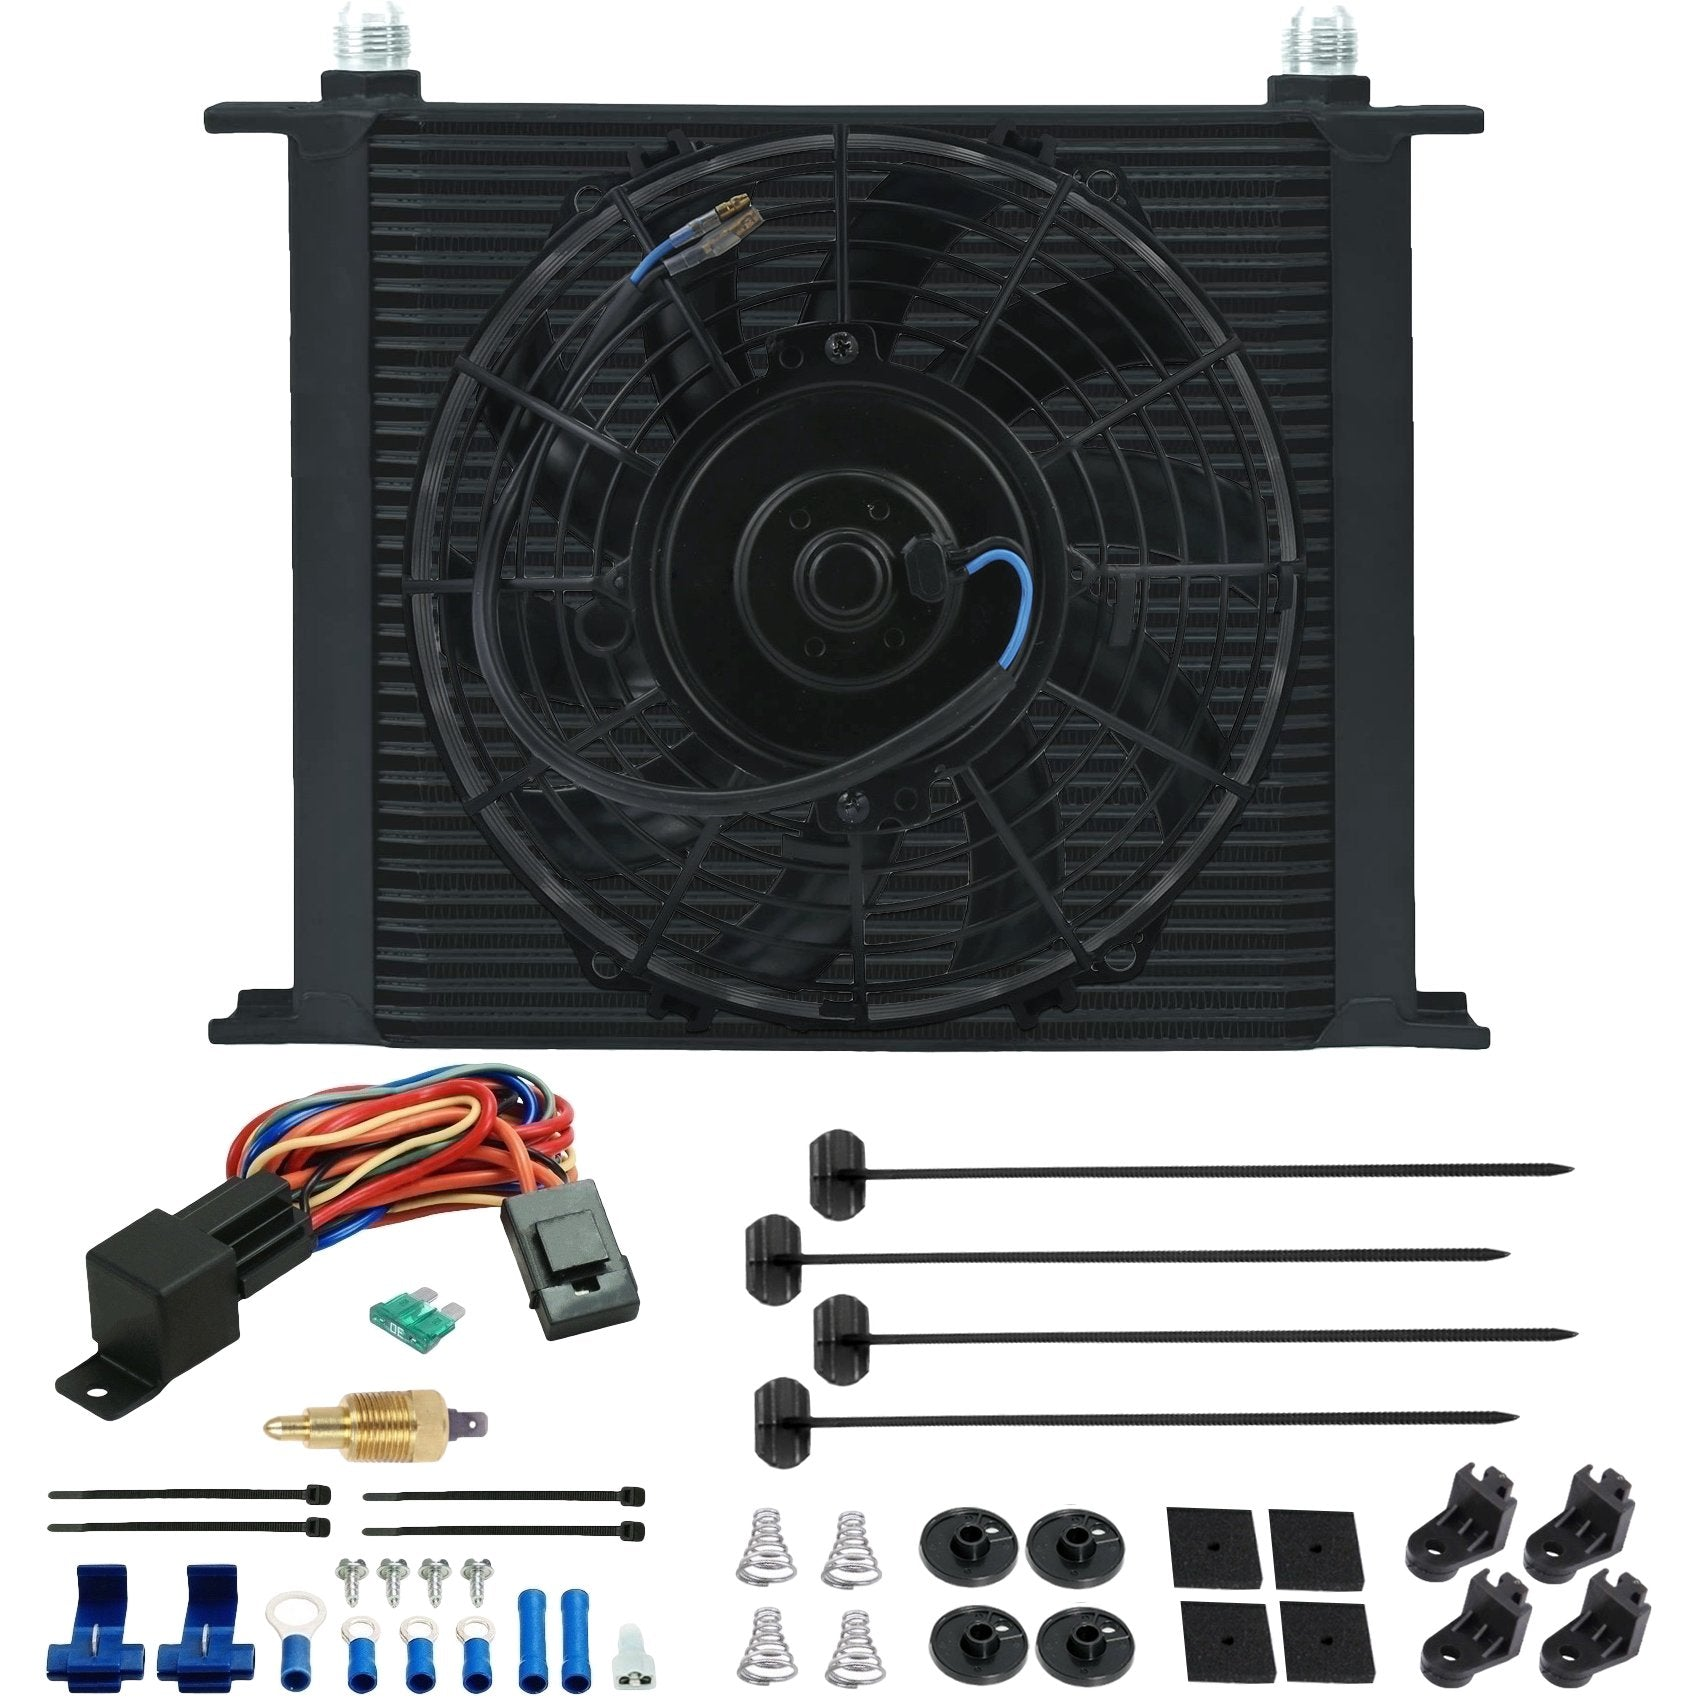 "34 Row Engine Transmission Oil Cooler 9"" Inch Electric Cooling Fan Ground Thermostat Temp Switch Kit-Oil Cooler-American Volt-10AN-1/8"" NPT-140'F On - 125'F Off-American Volt"